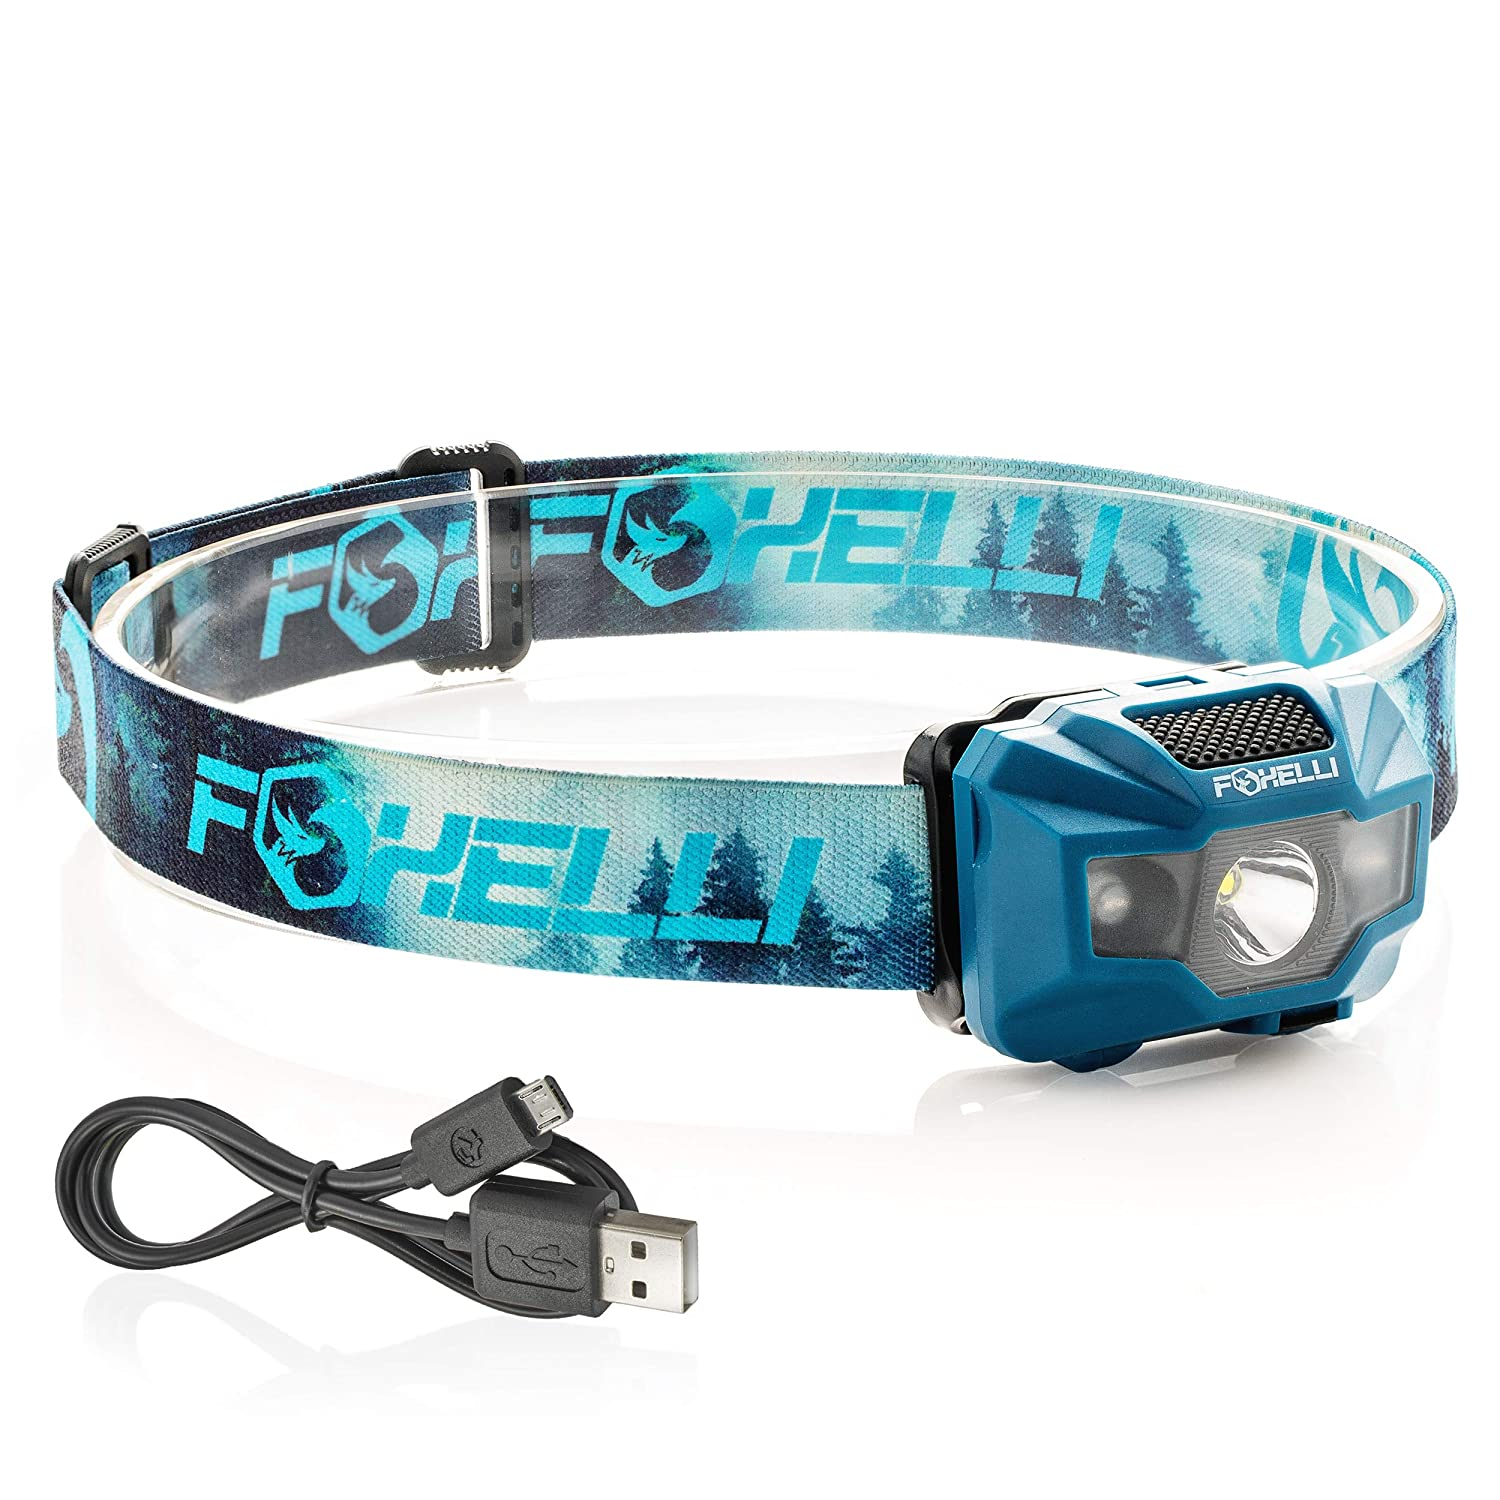 Foxelli USB Rechargeable Headlamp